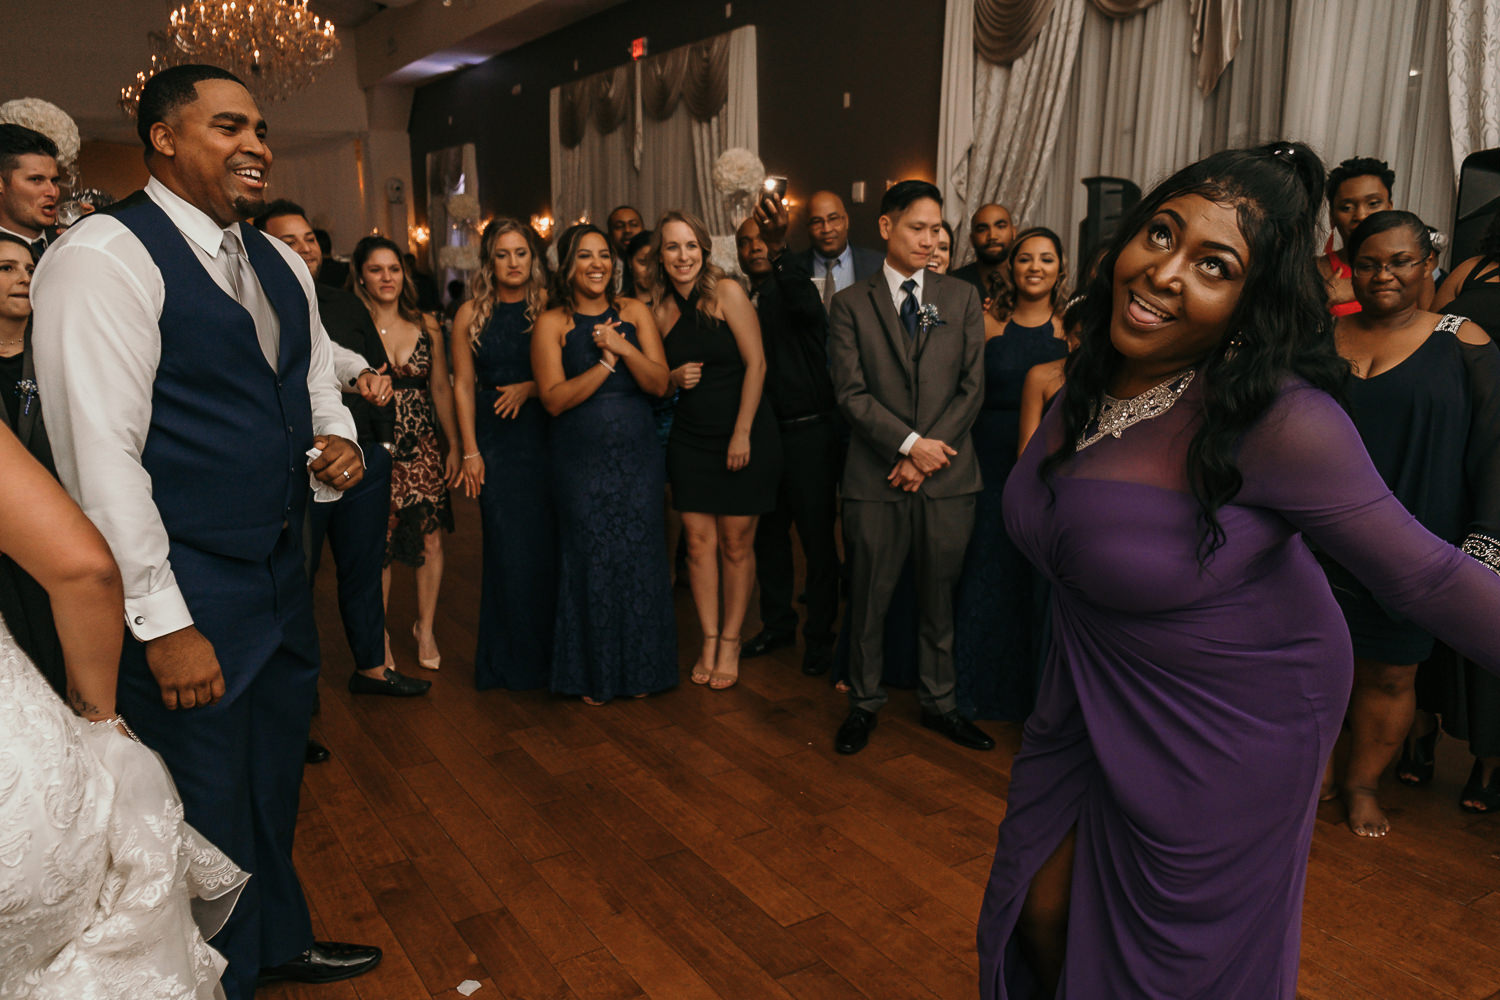 cousin of groom purple dress dancing tongue out